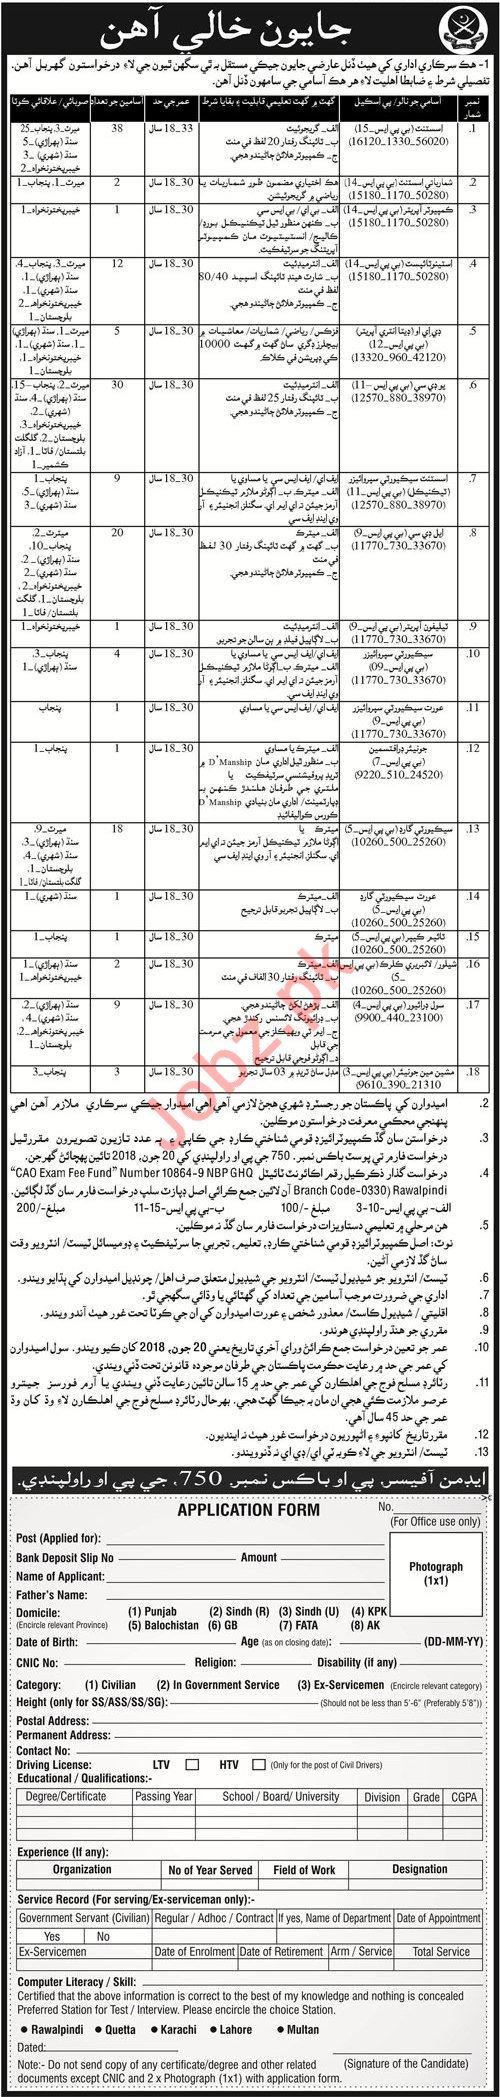 Pakistan Army Rawalpindi Jobs 2018 for LDC & Assistants